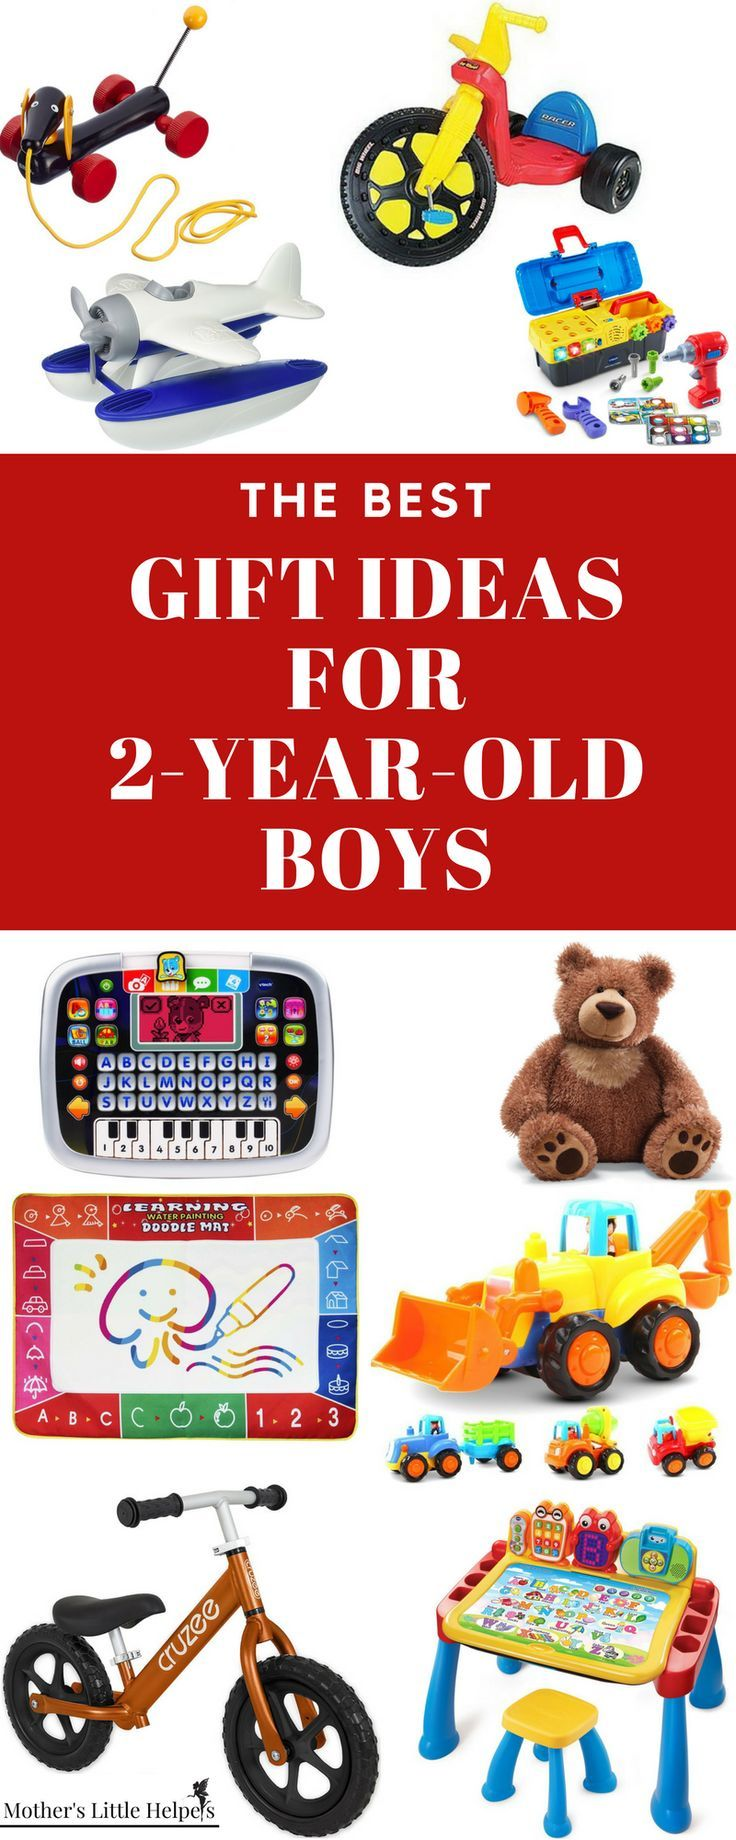 The best gift ideas for two year old toddler boys top toys these are the best toys for christmas birthday or easter presents toy gift guide for toddlers negle Image collections